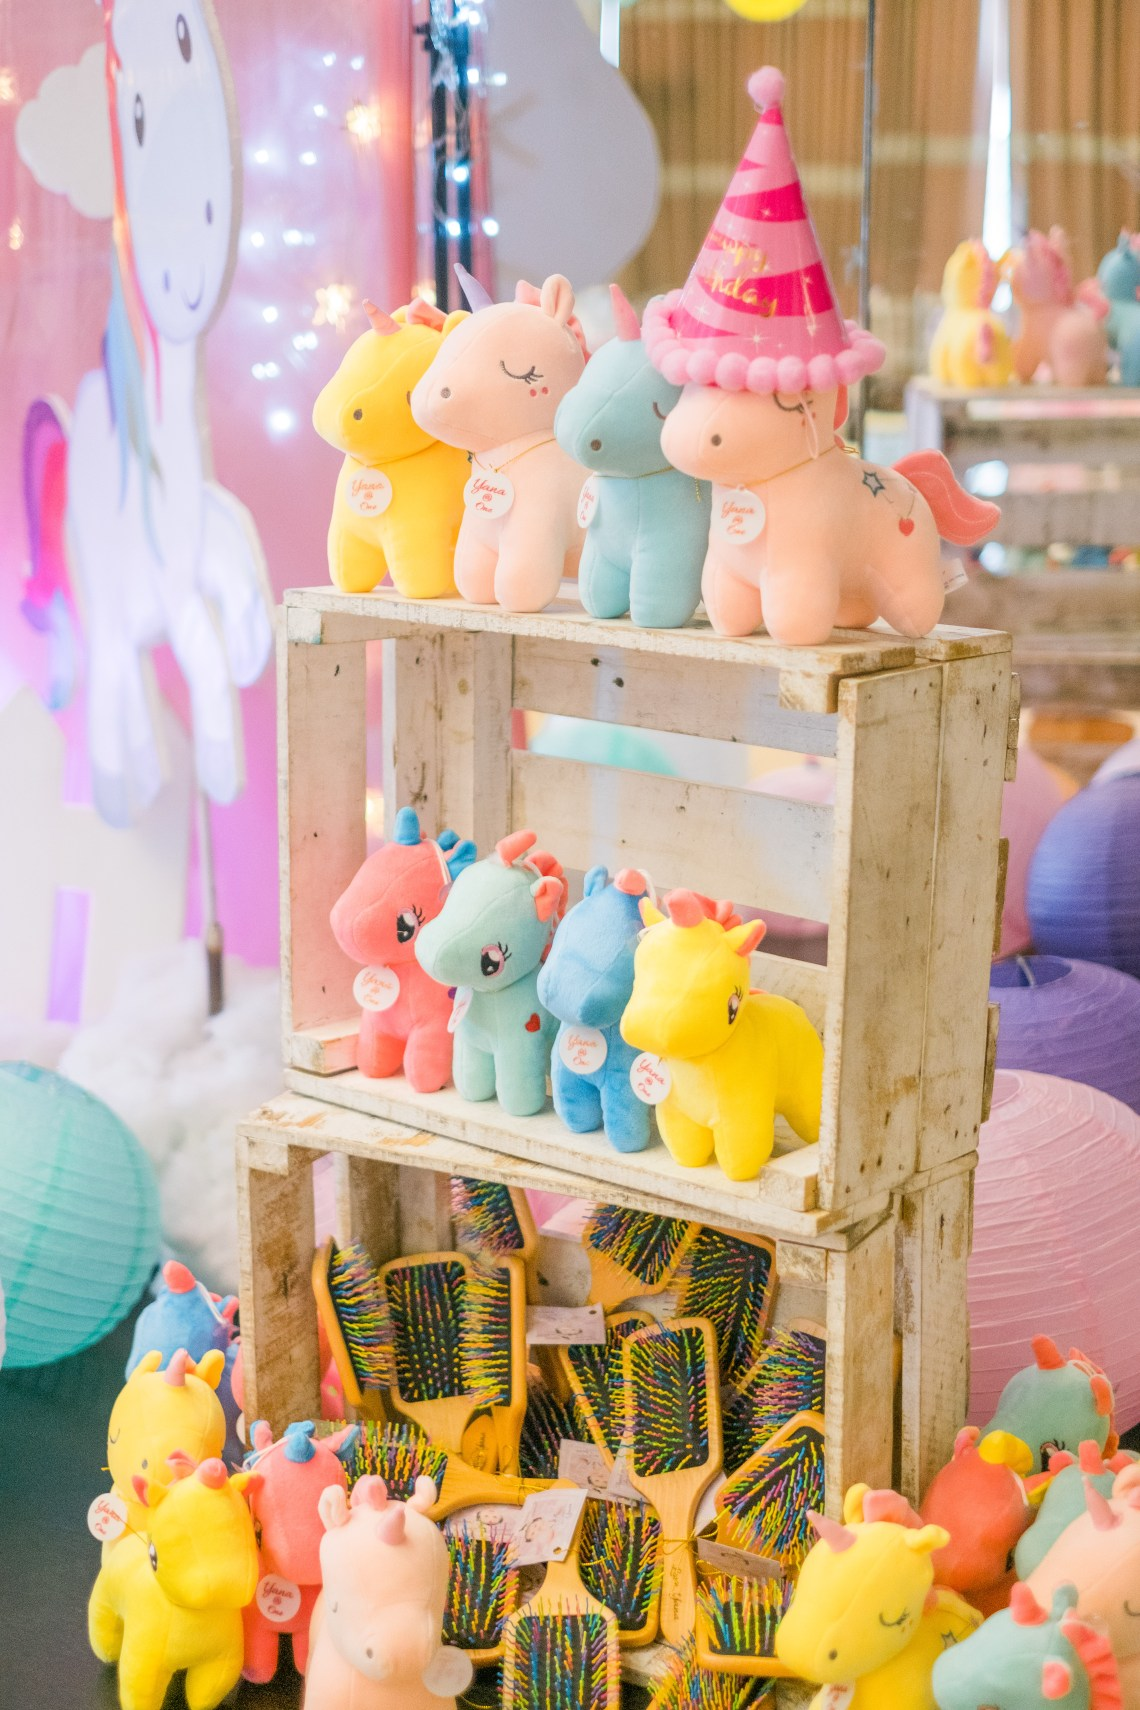 dyosathemomma: First Birthday party Ideas-unicorn theme-Mariana Jazrine-Amaria Niszha-mommy blogger ph-kiddie party ideas-unicorn stuffed toys